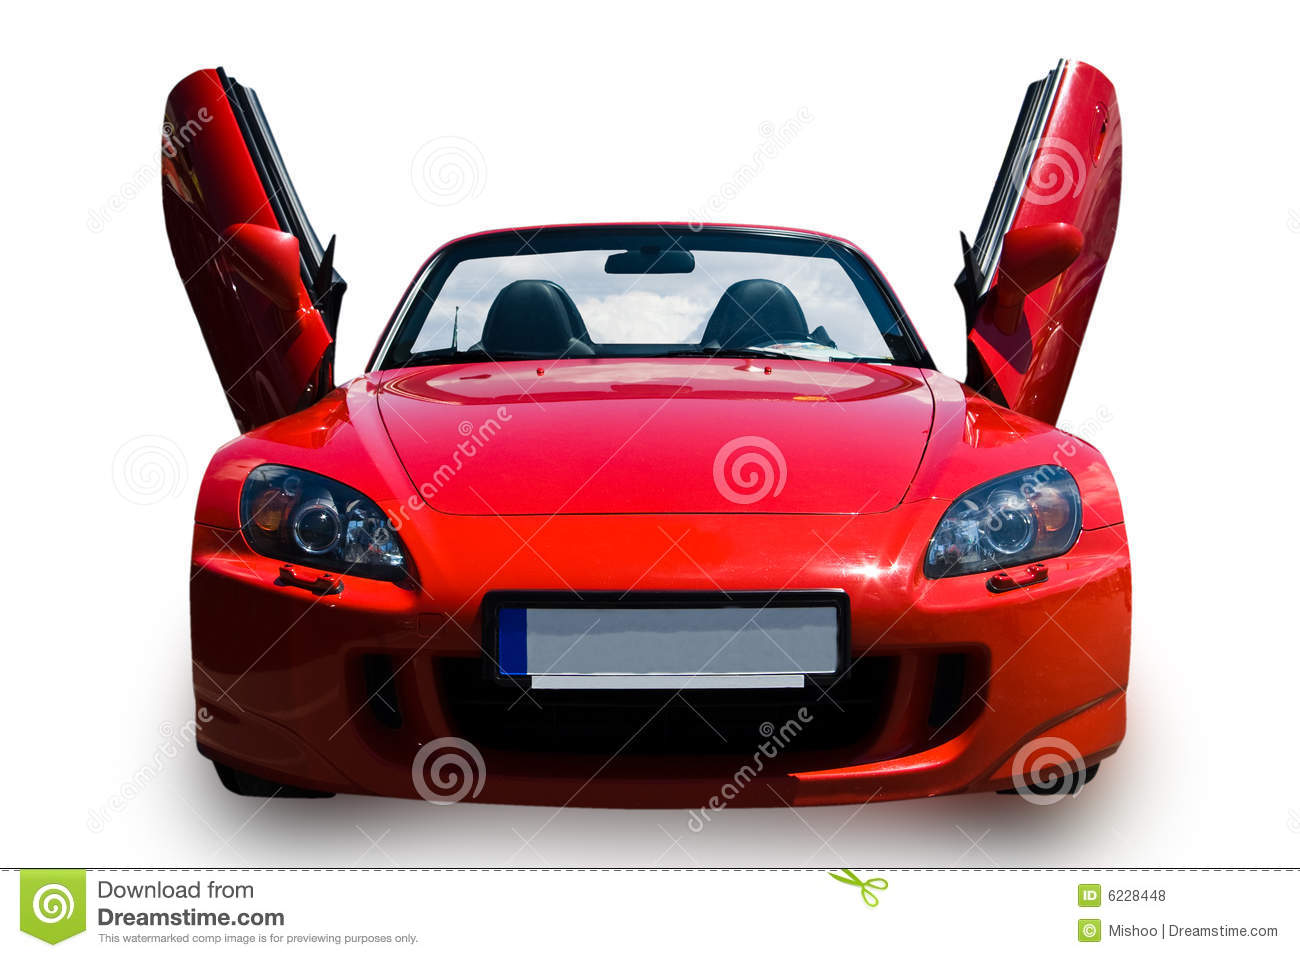 Red Sports Car Stock Photo Image Of Sport Auto Reflection - Red sports car